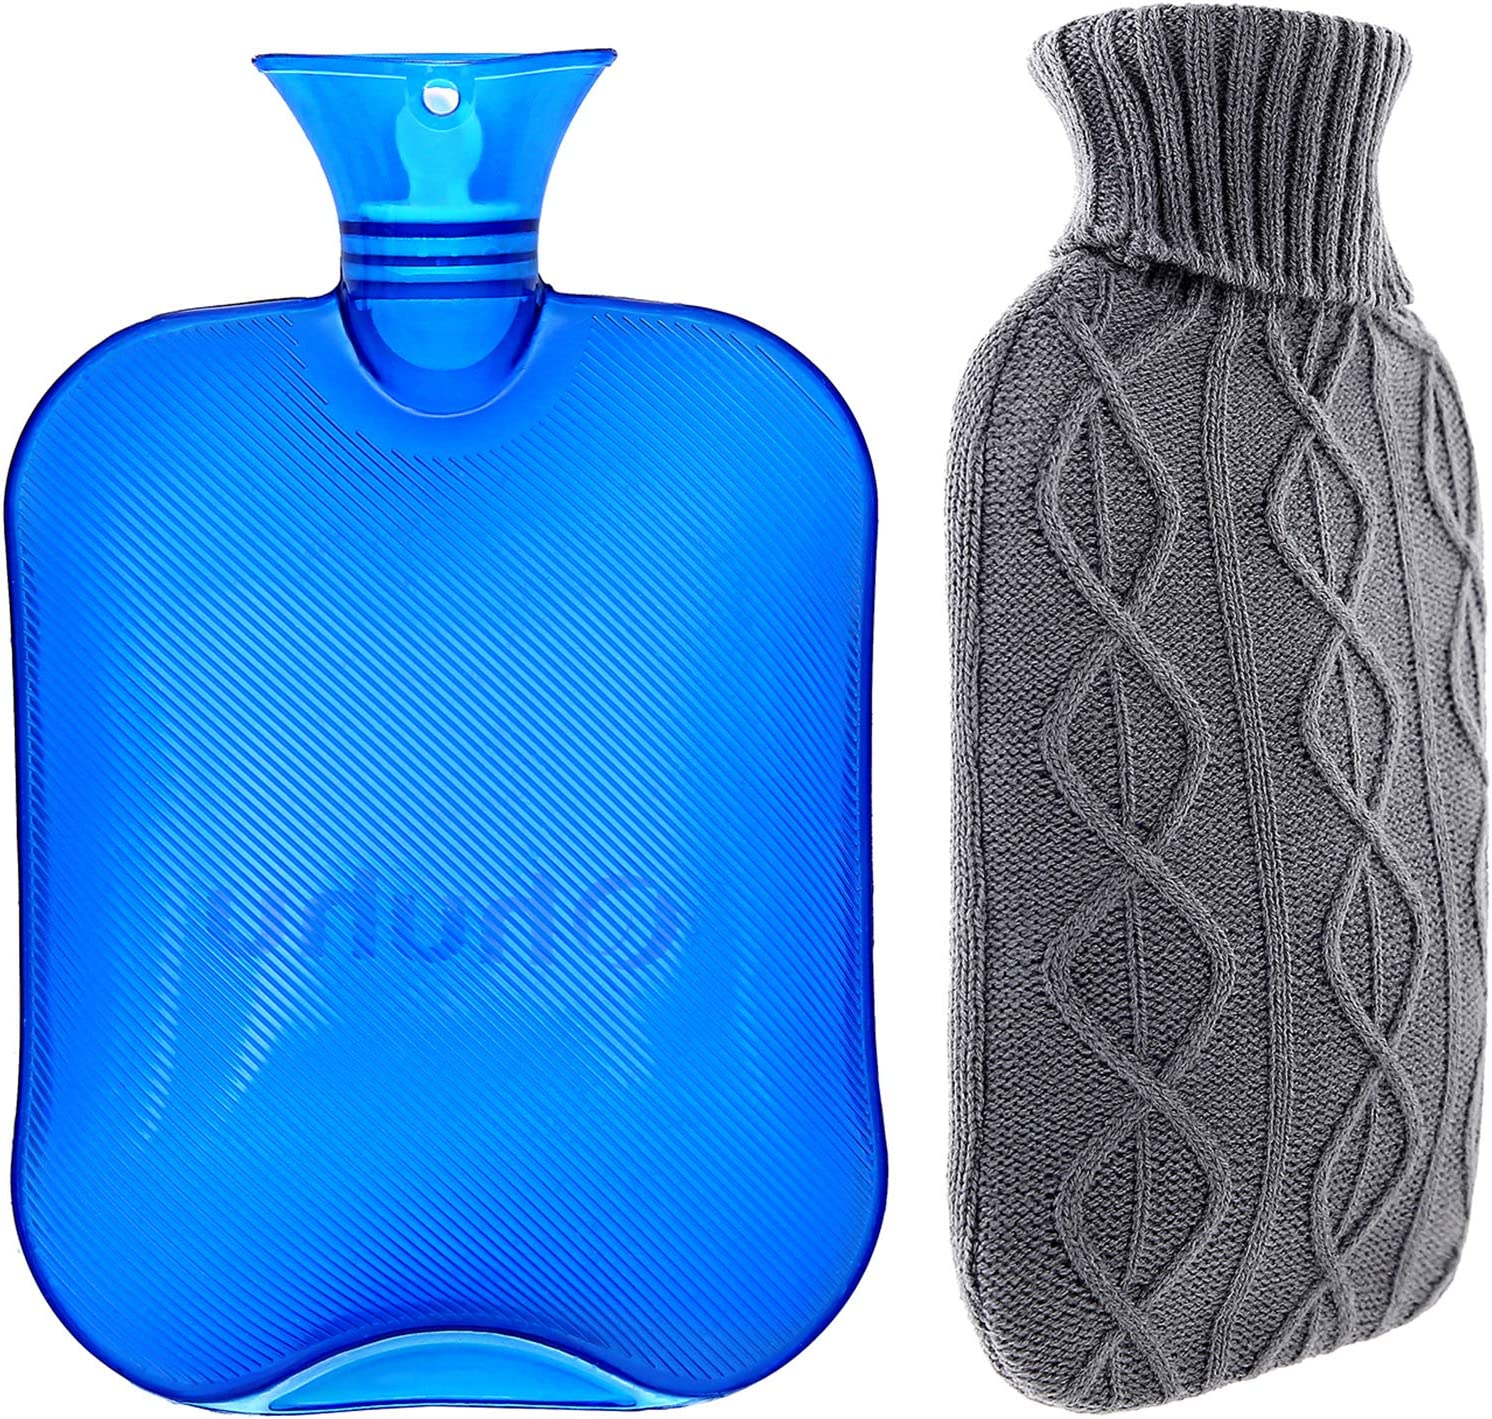 Hot Water Bottle with Cover, Ohuhu 2L Classic Premium Transparent Hot or Cold Water Bag with Knit Cover for Pain Relief Hot Pack Therapy 2000ml 68oz, Blue, Home and Outdoor